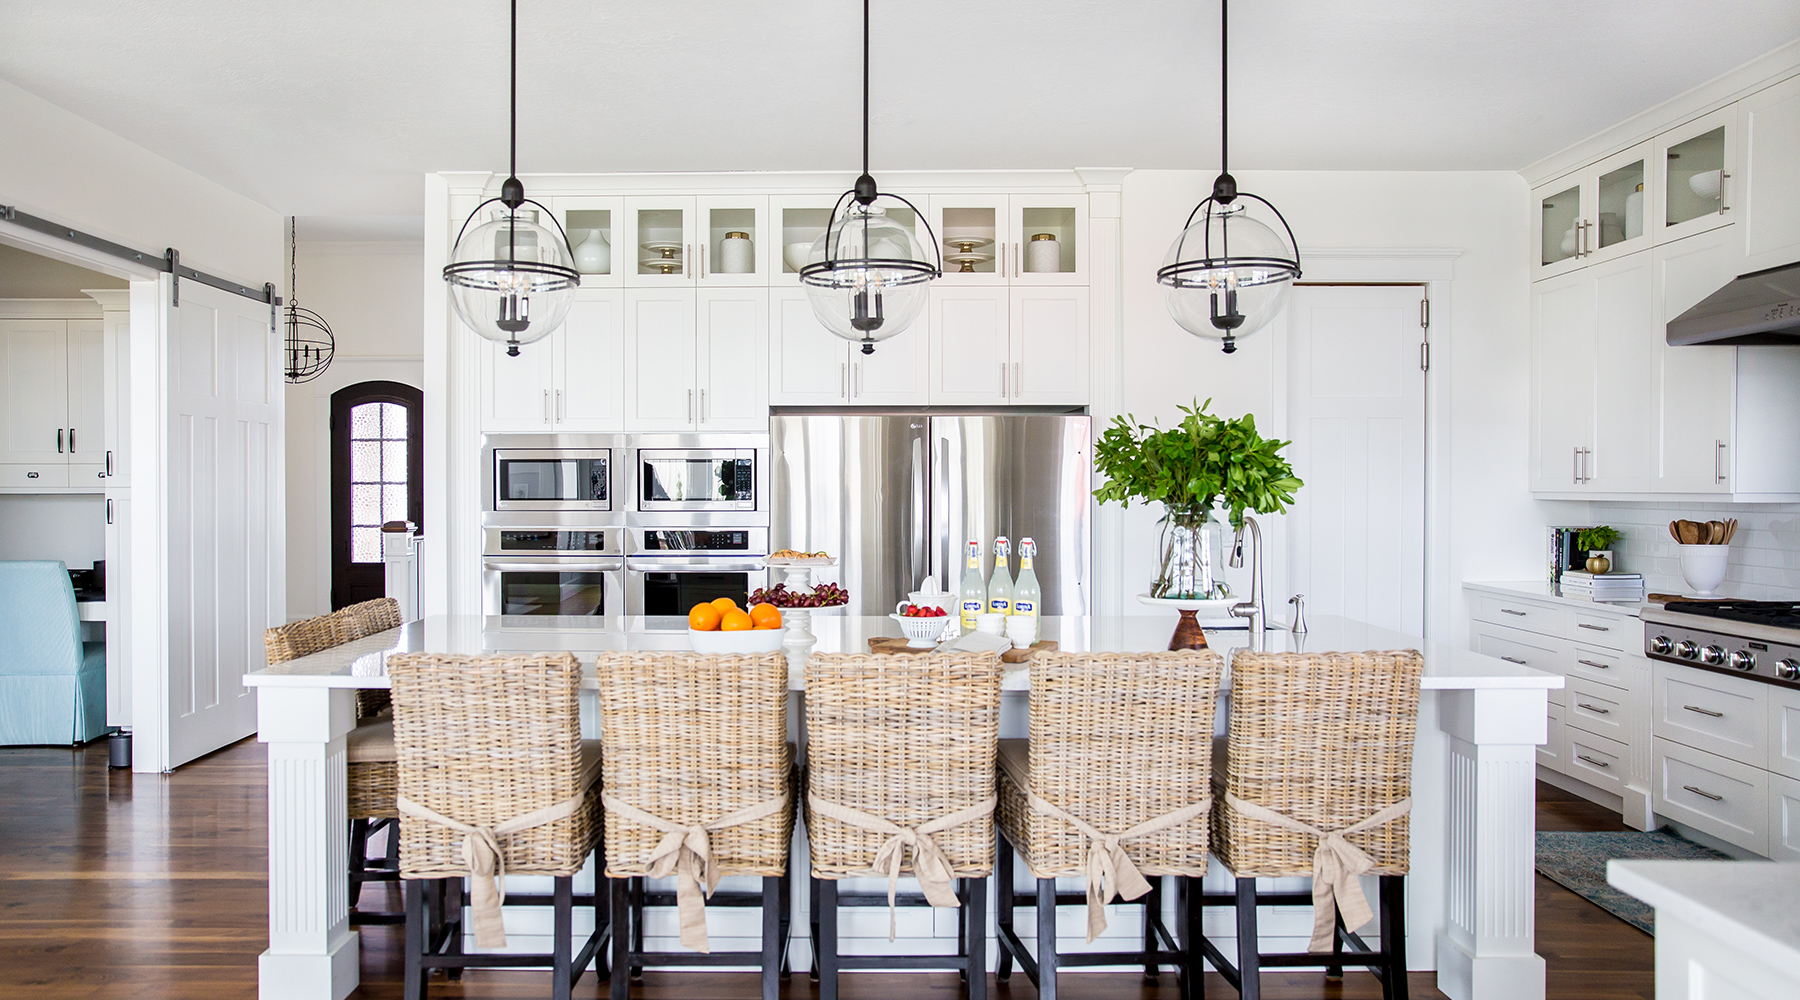 Lake House Kitchen Wicker Chairs